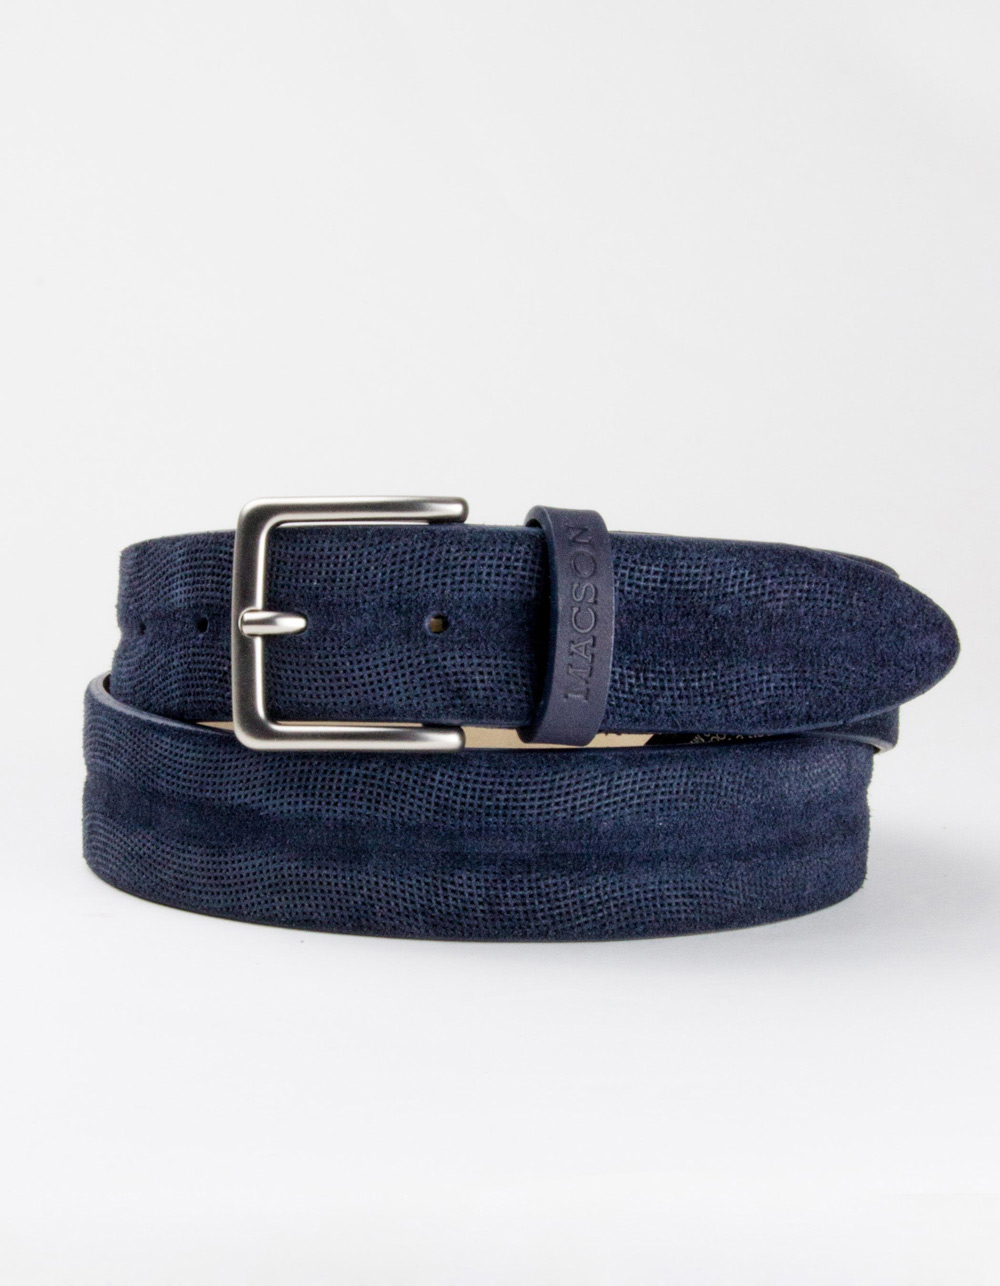 Blue structured leather belt